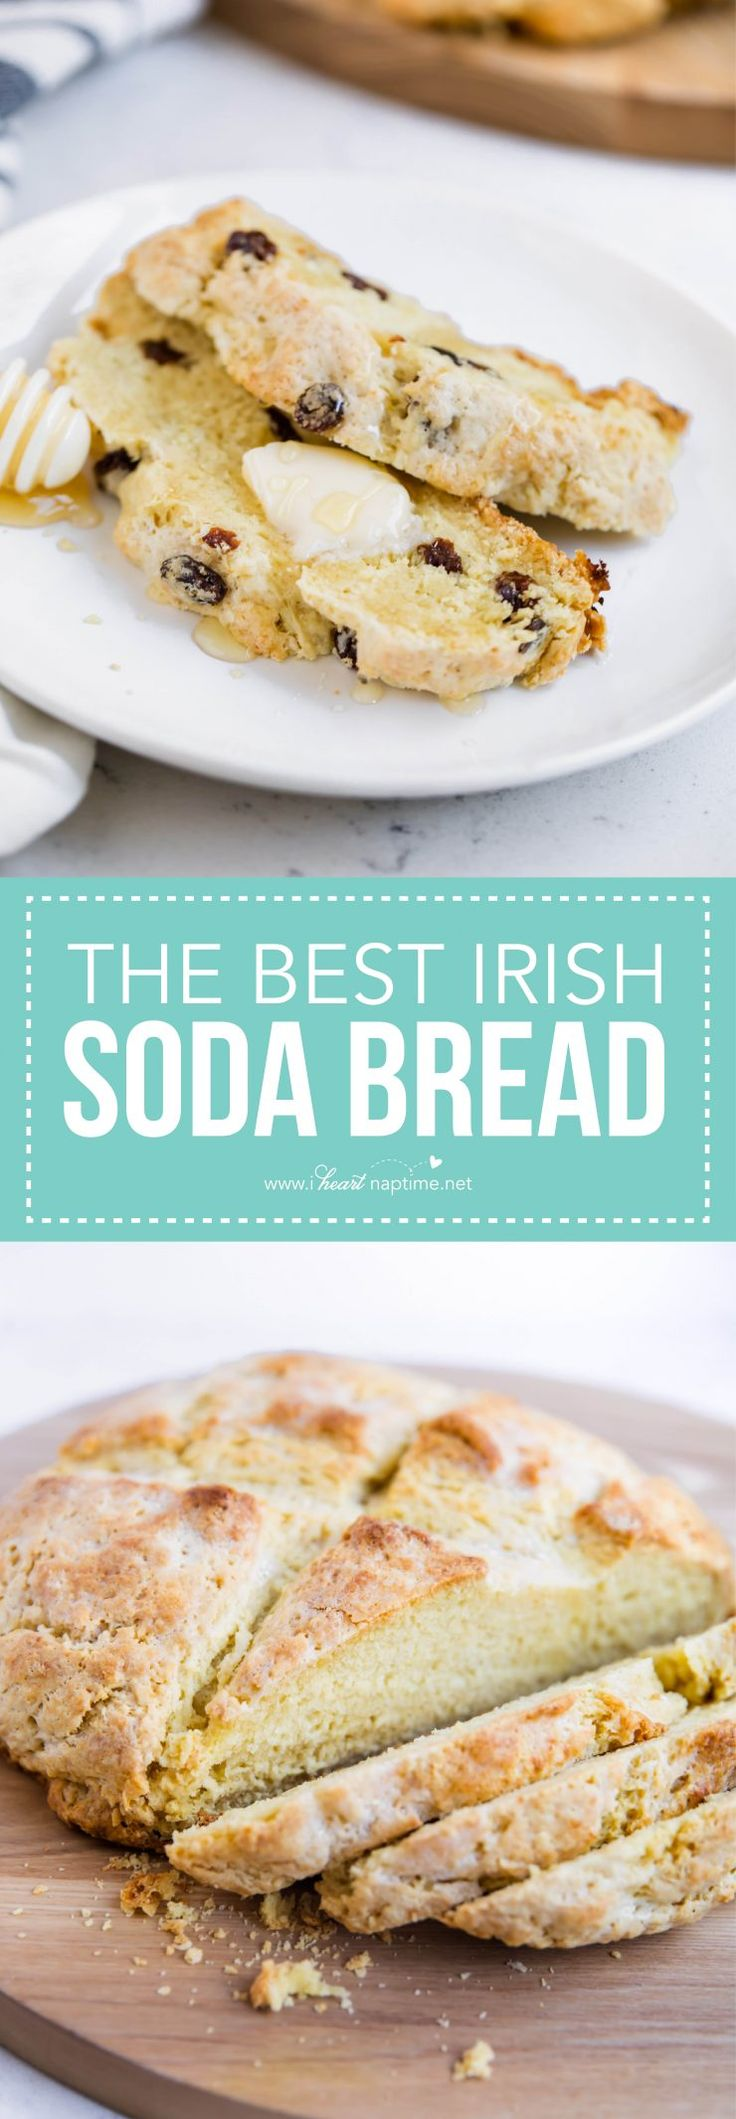 Irish soda bread -a good old fashioned recipe that can be prepped in 10 minutes! The buttermilk gives this bread the perfect flavor. It's crunchy on the outside and moist and sweet on the inside!